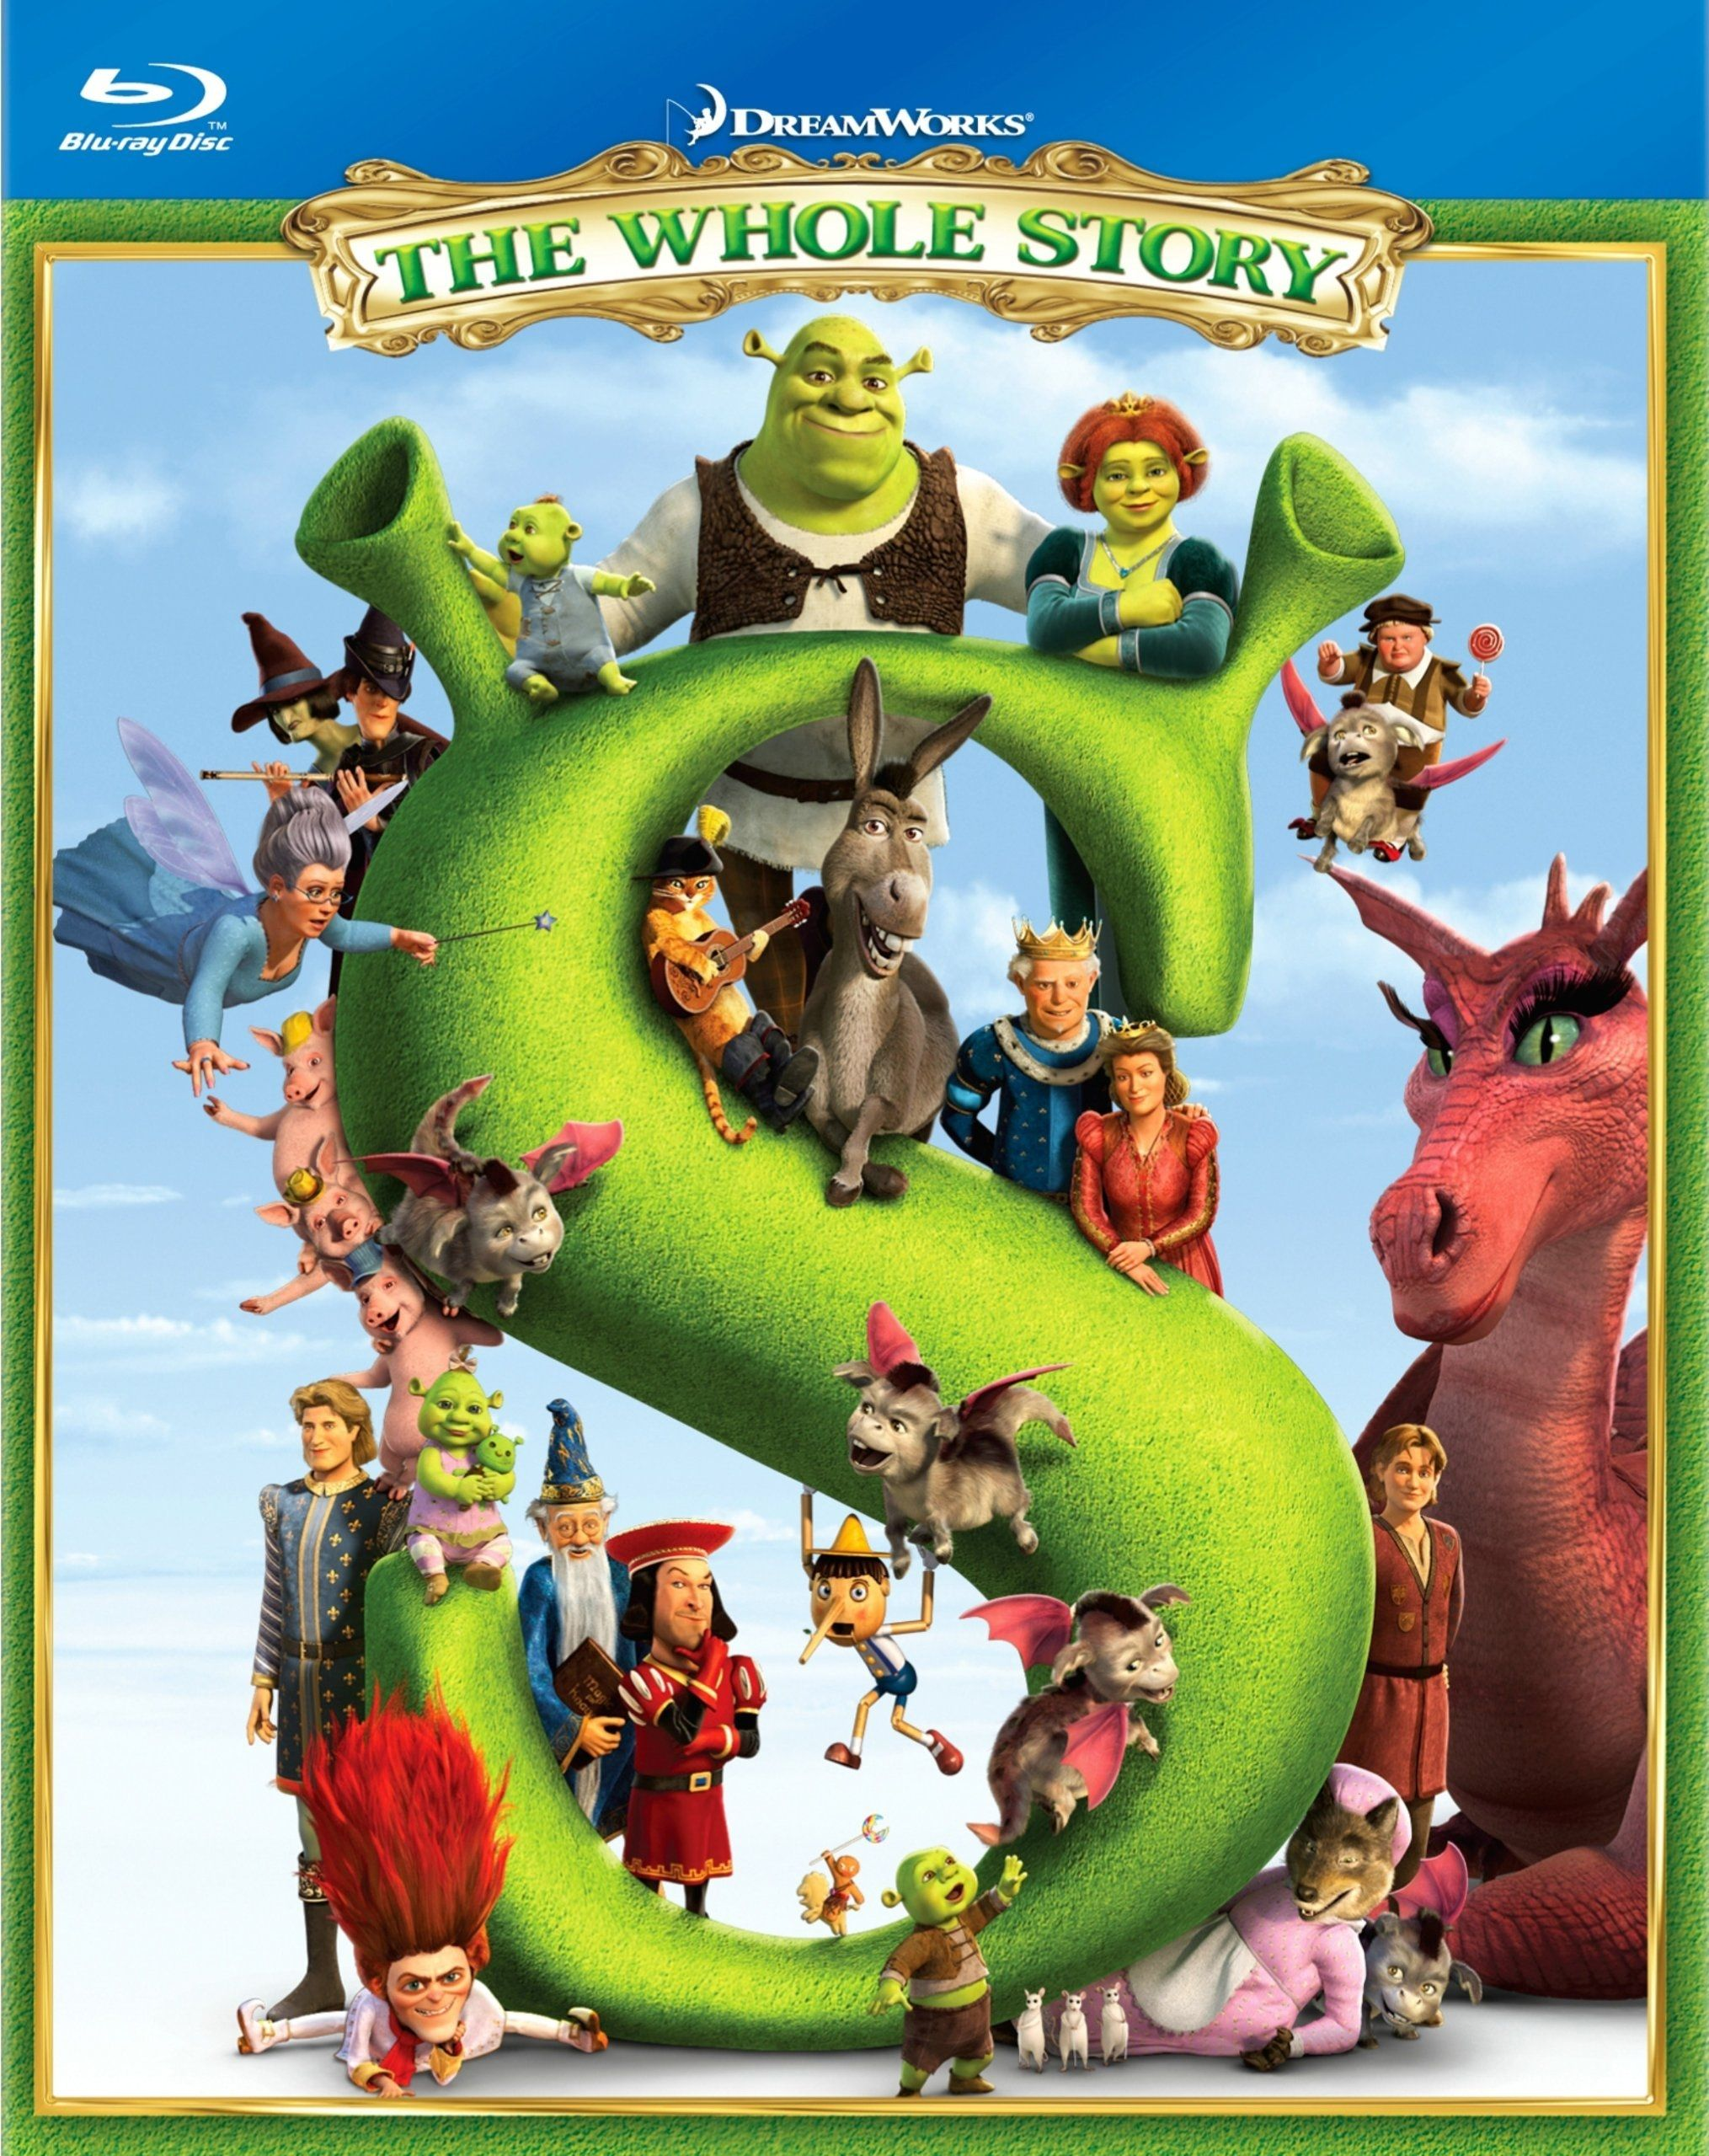 Shrek The Whole Story Blu Ray Box Set Event And Interviews